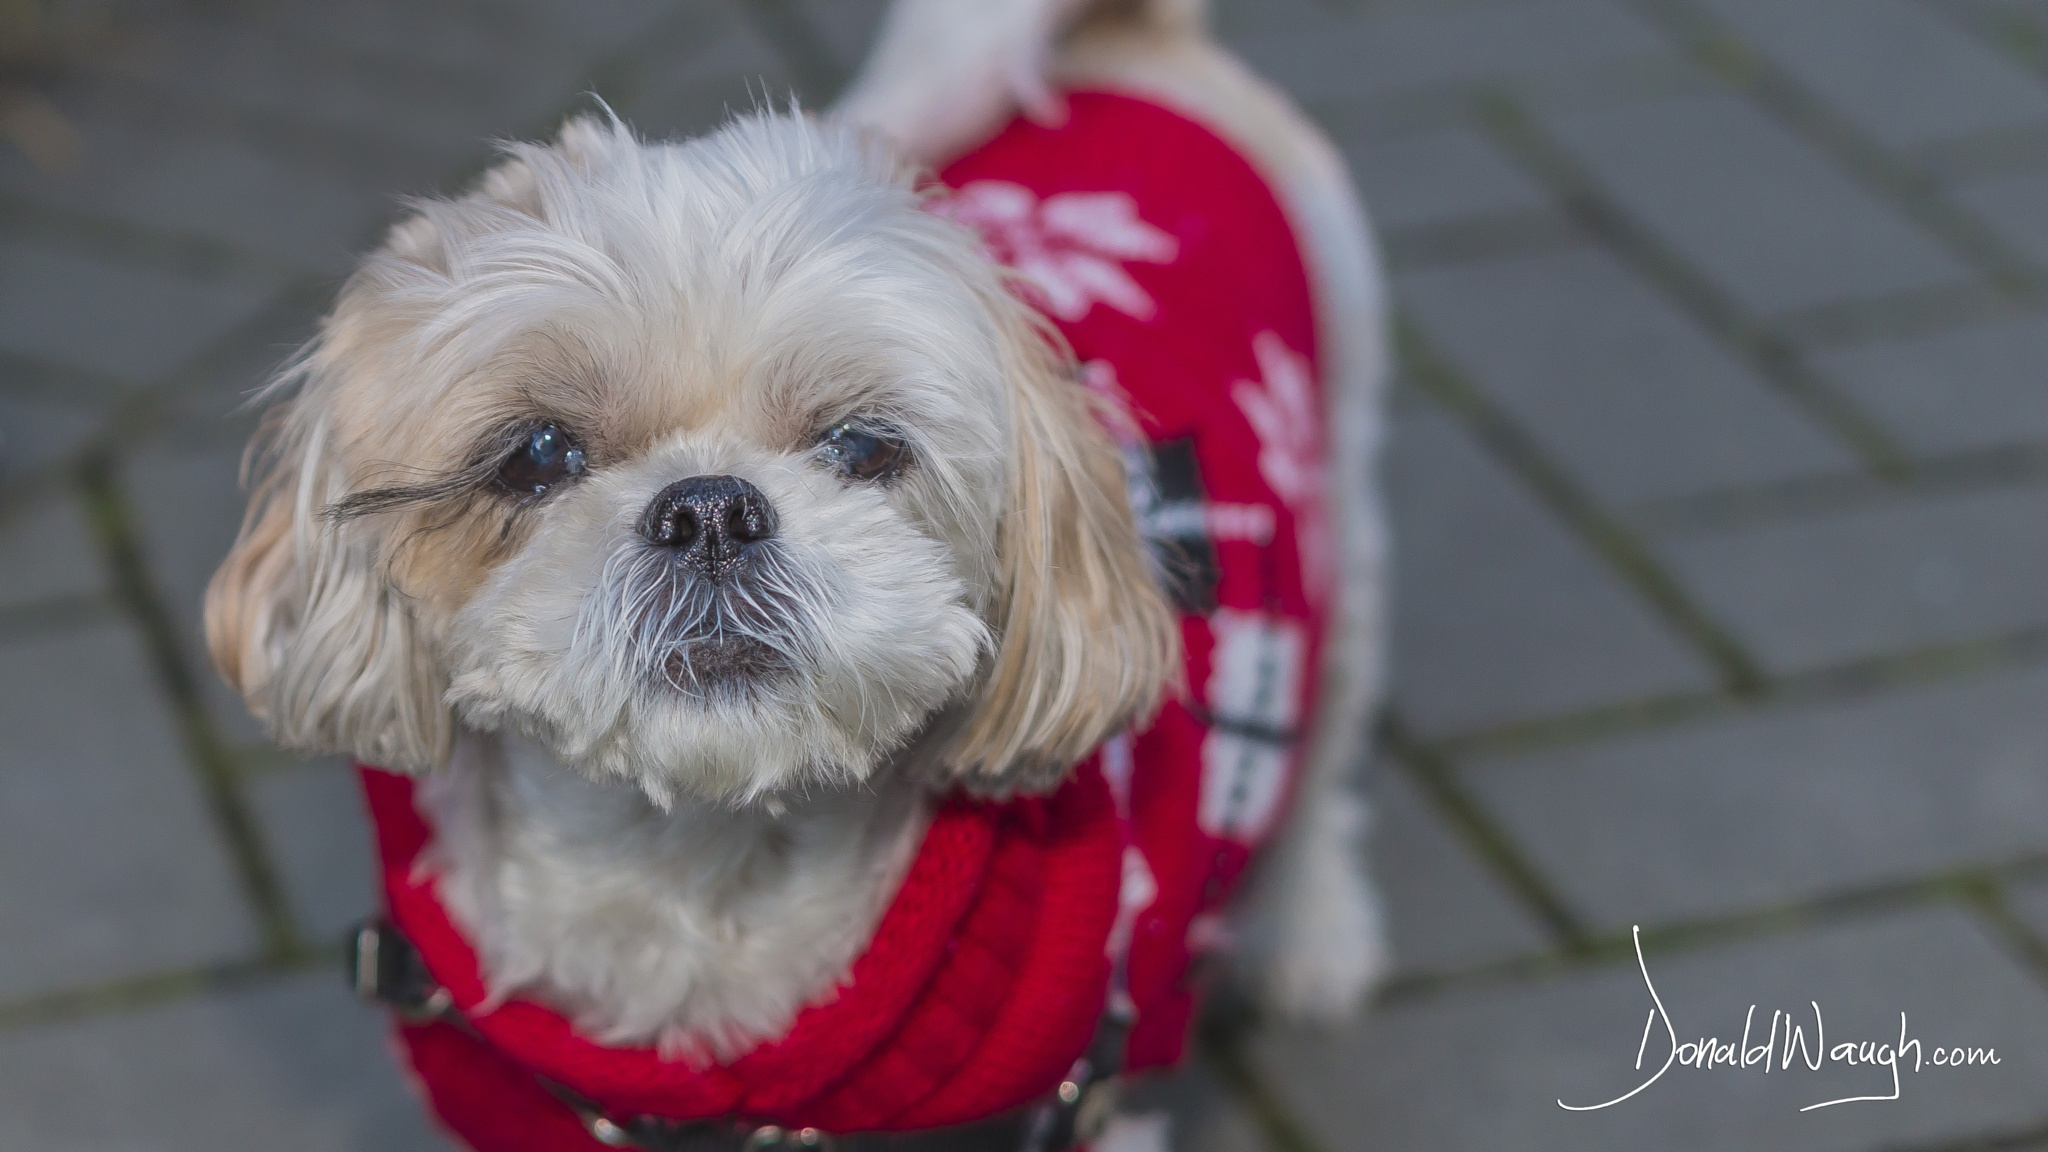 Cute Little Doggie by Donald Waugh